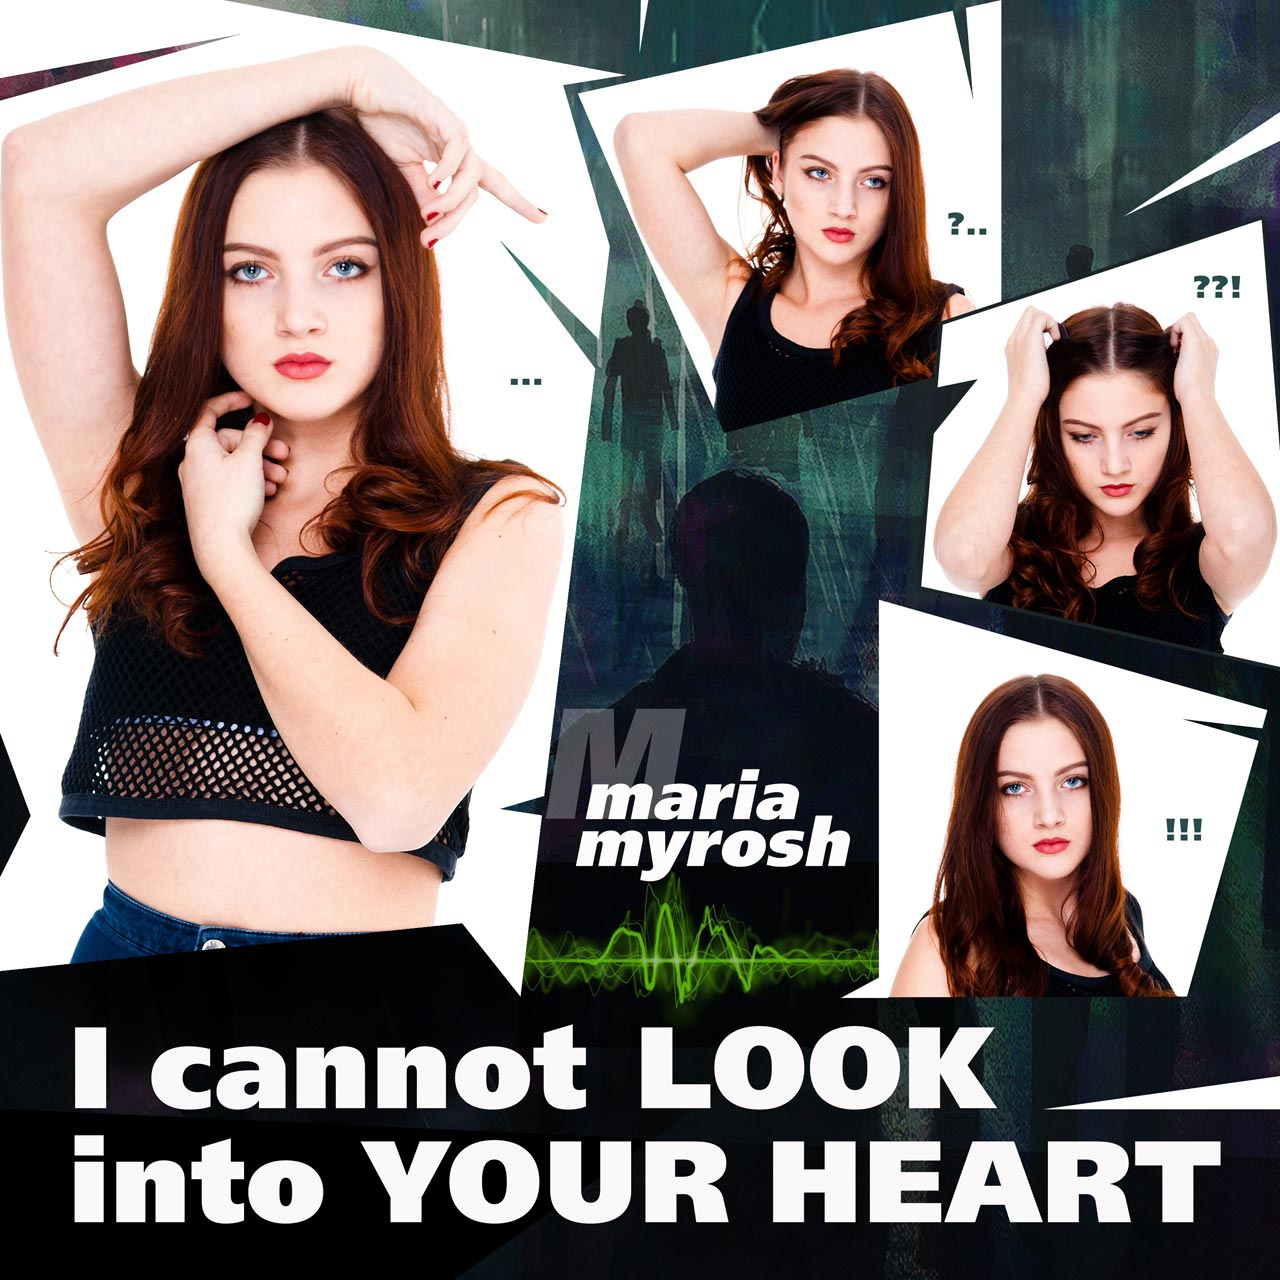 I cannot look into your heart - Maria Myrosh